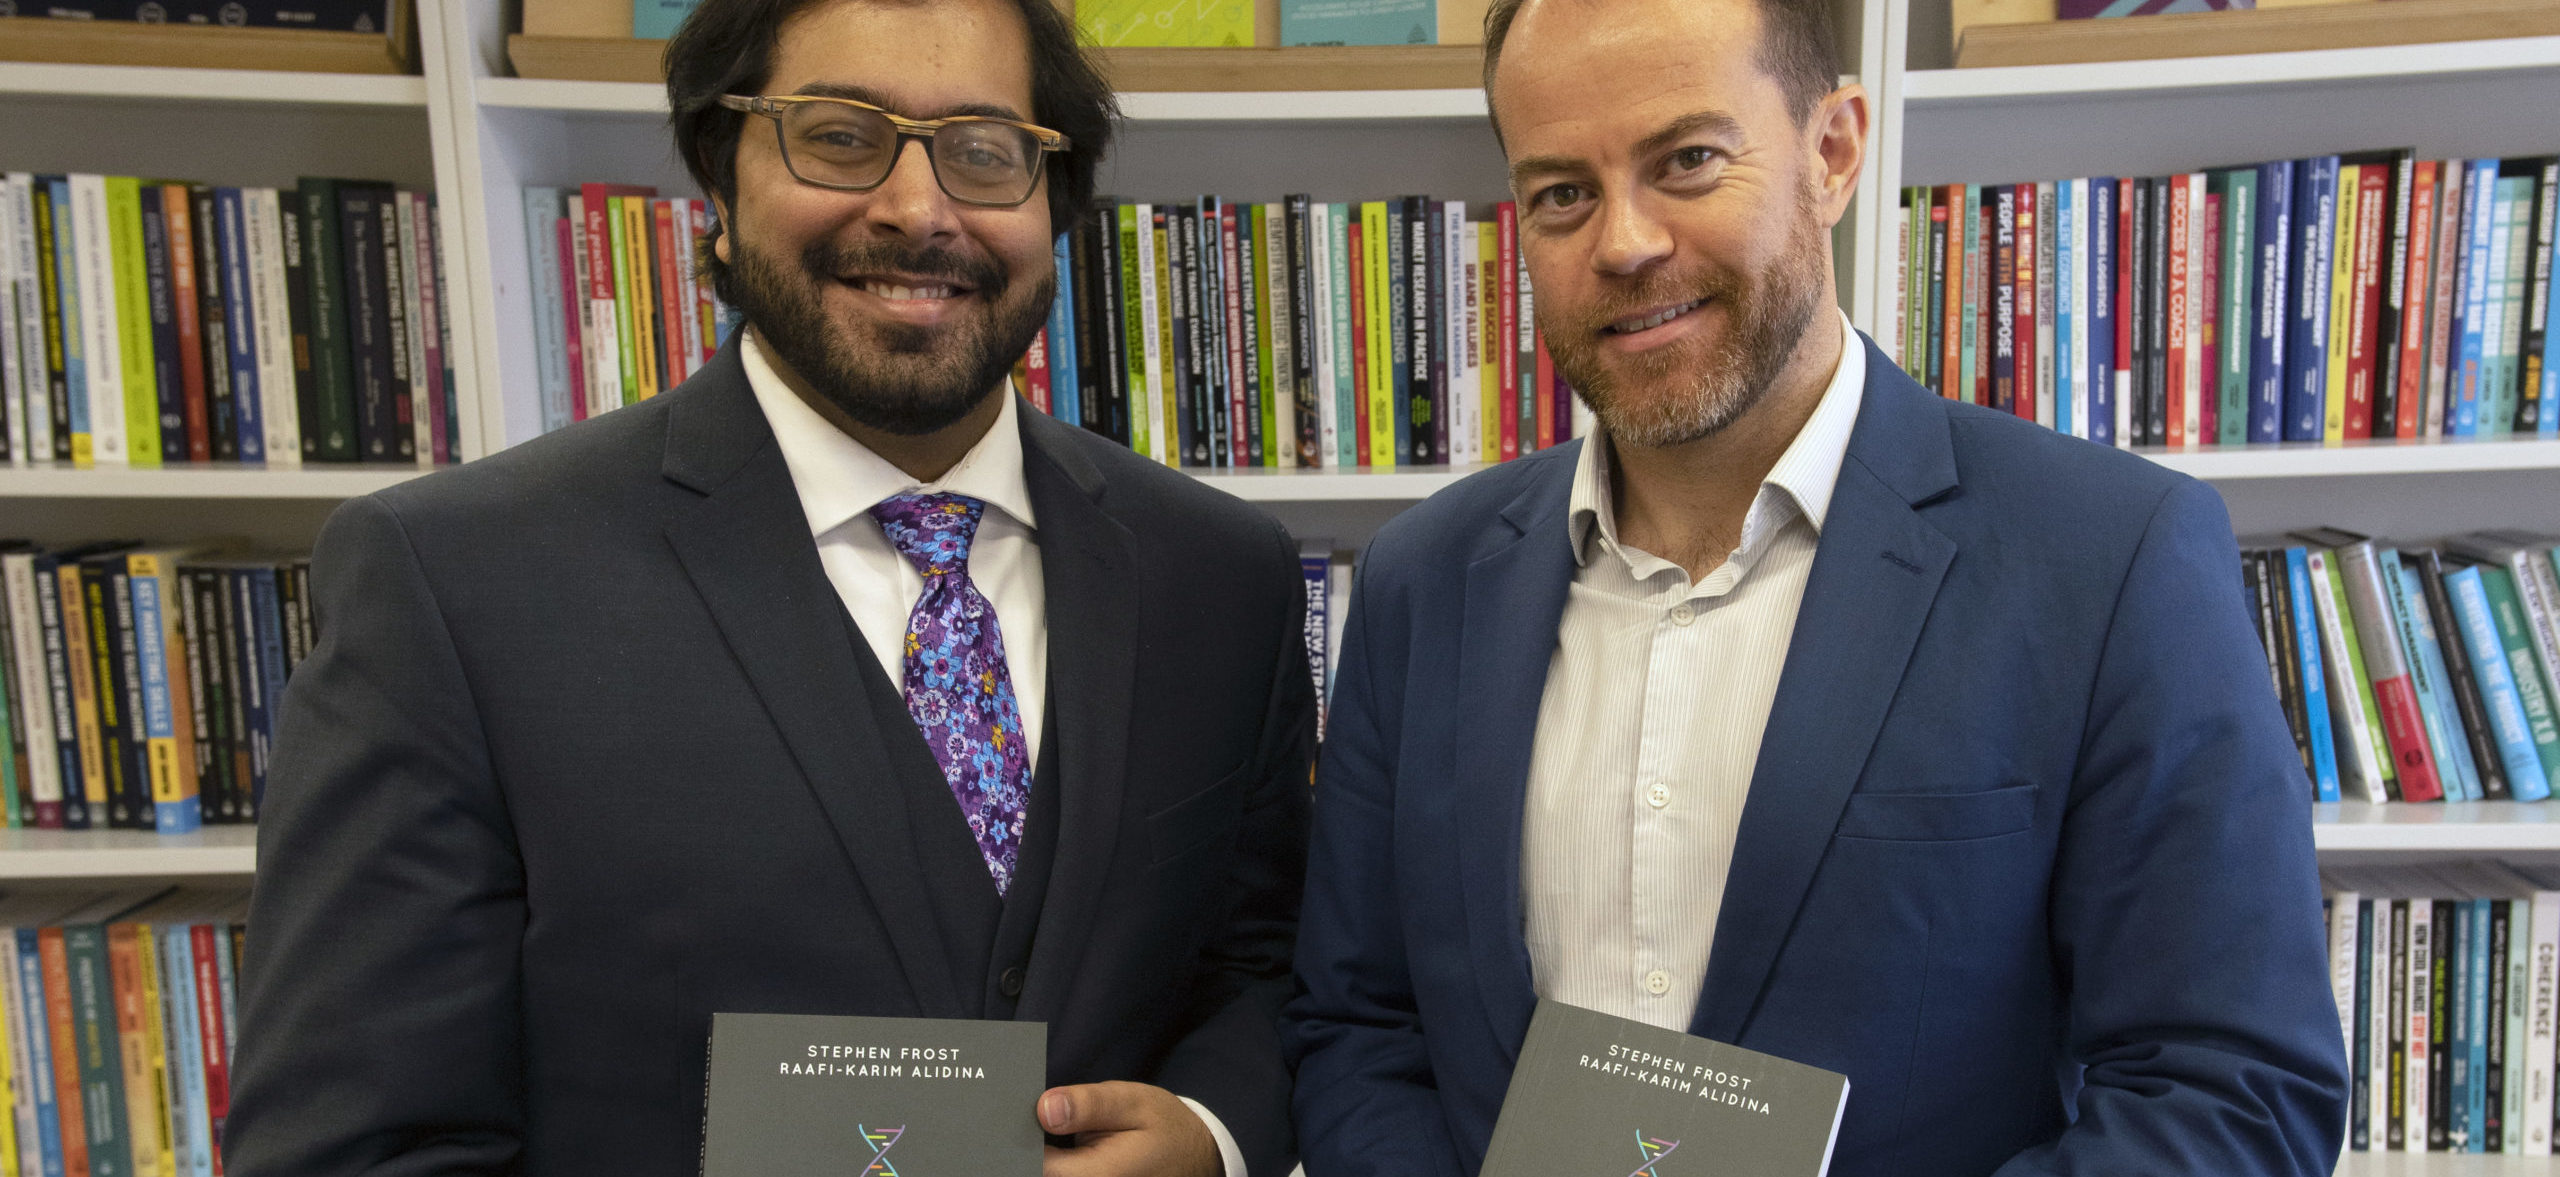 Stephen and Raafi with book How to Build an Inclusive Organisation